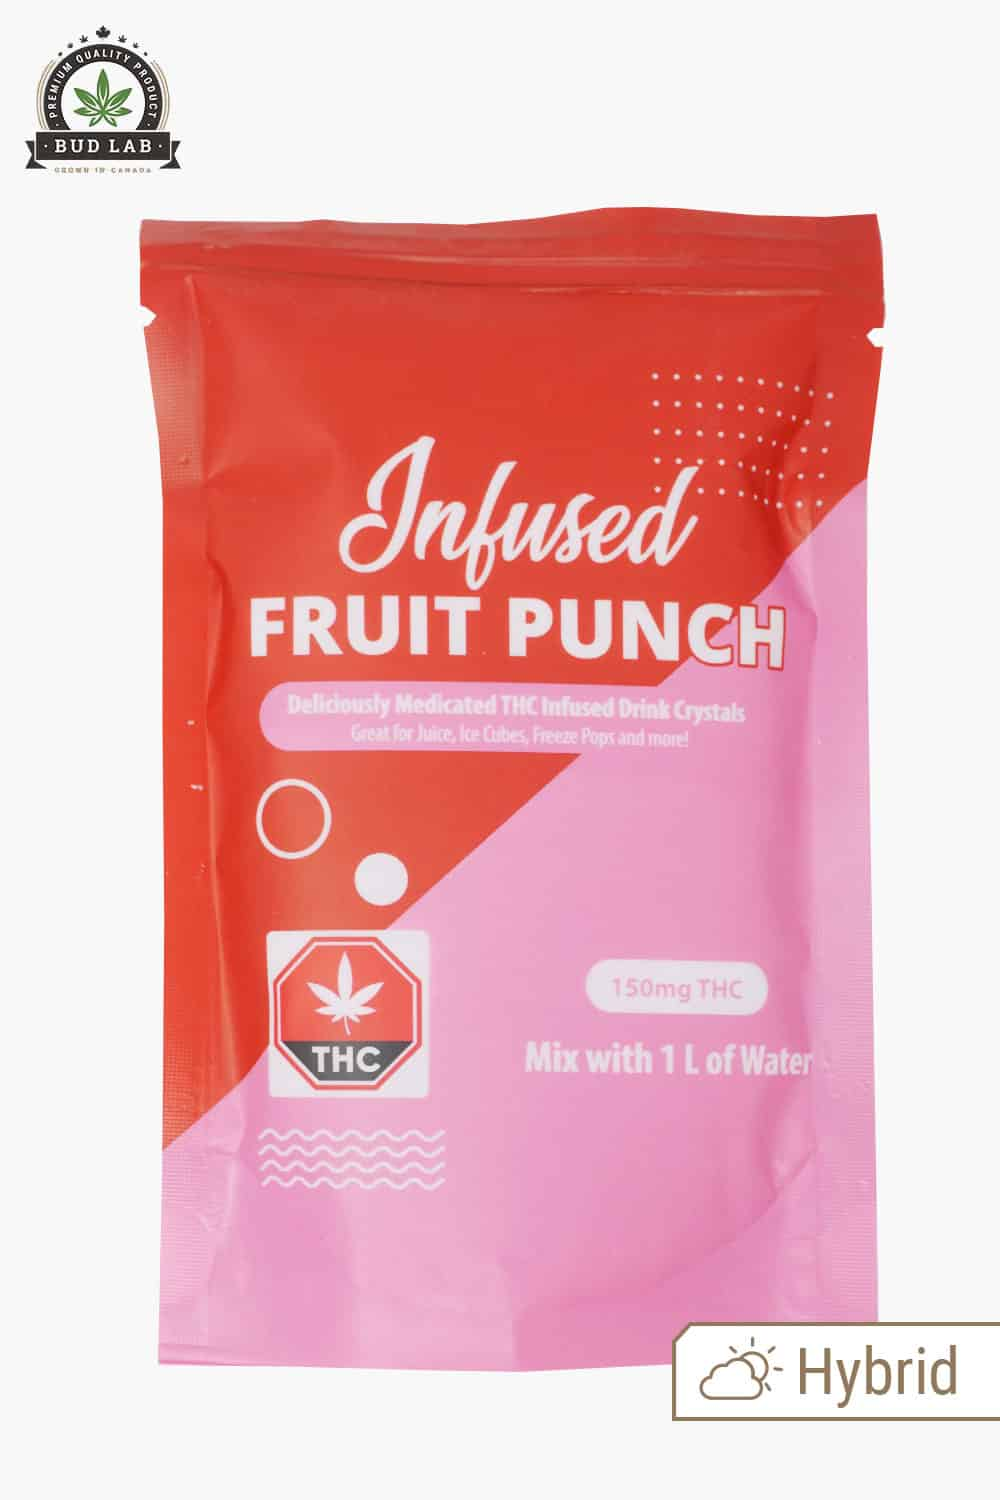 Infused Fruit Punch Drink Mix 150mg